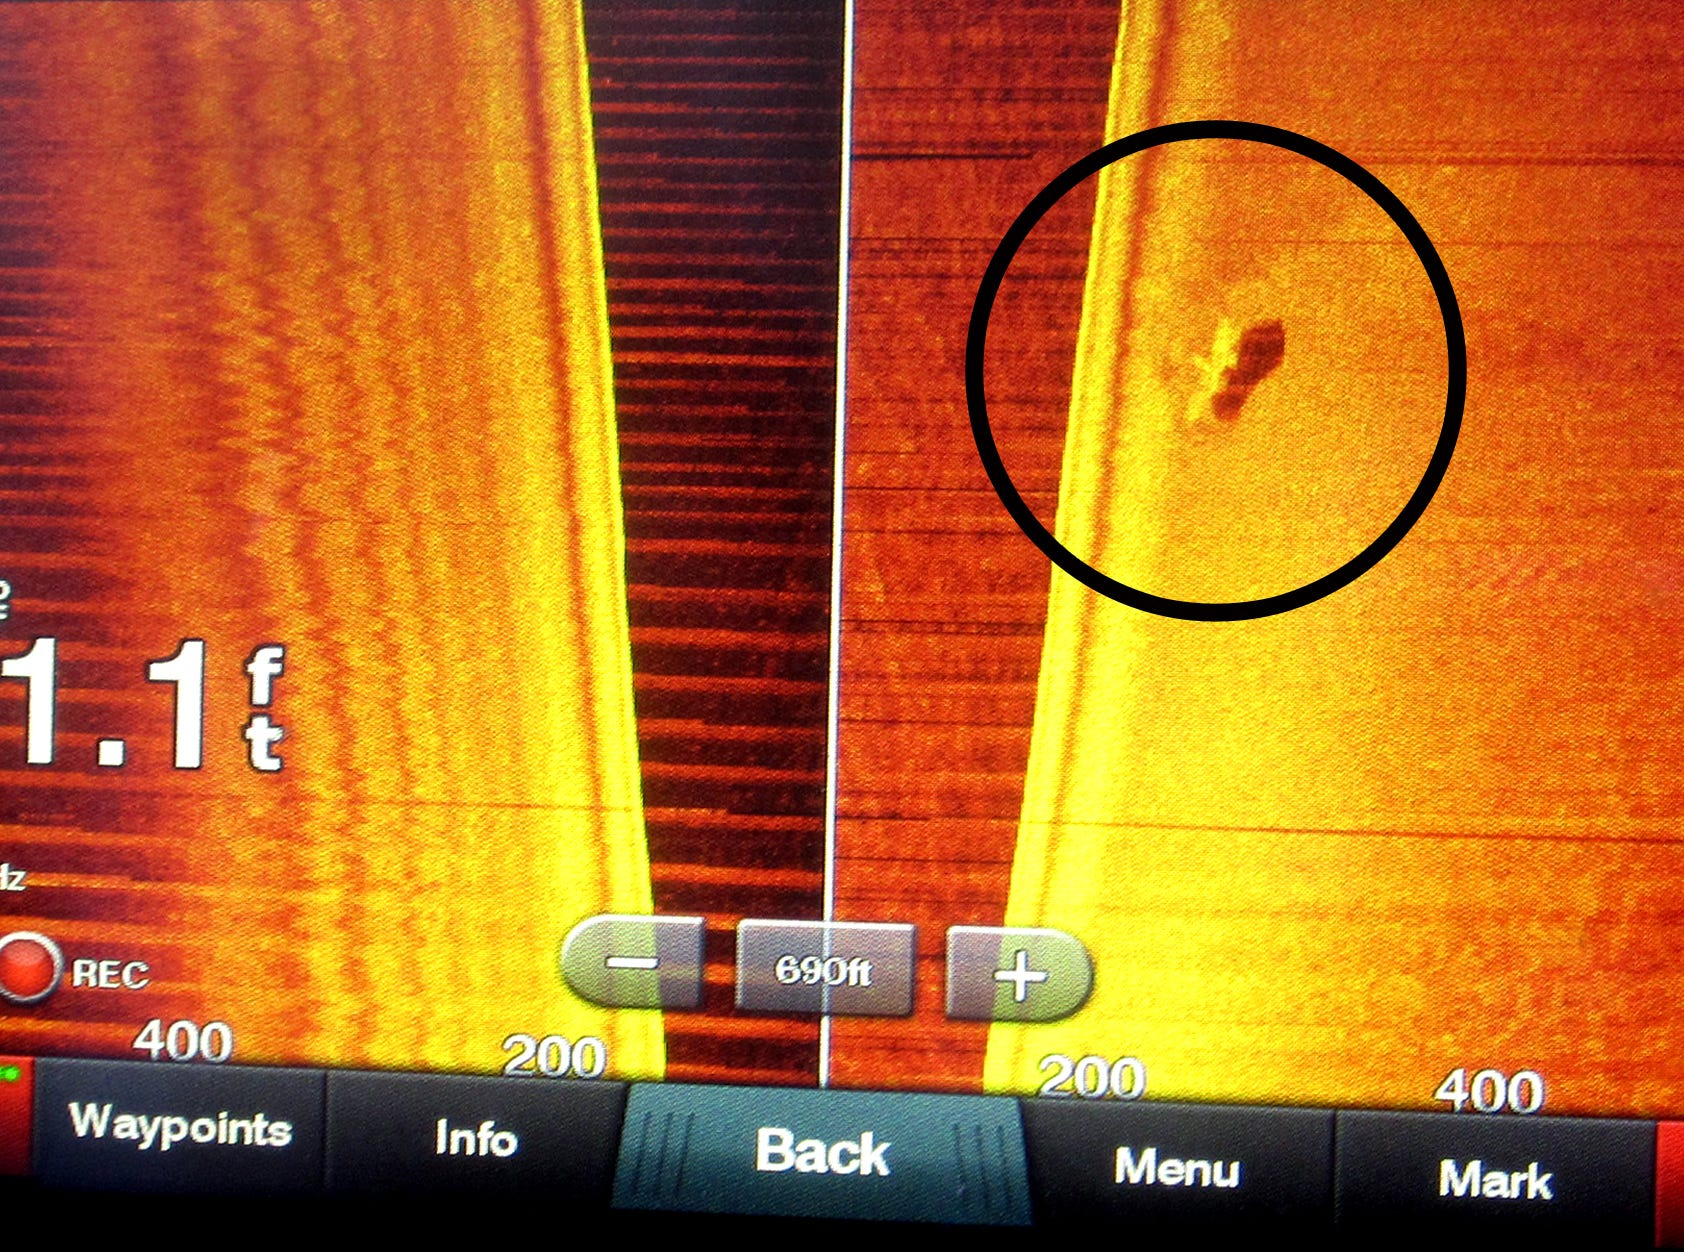 The side scan sonar screen revealed a shipwreck in deep water after only two hours of searching.